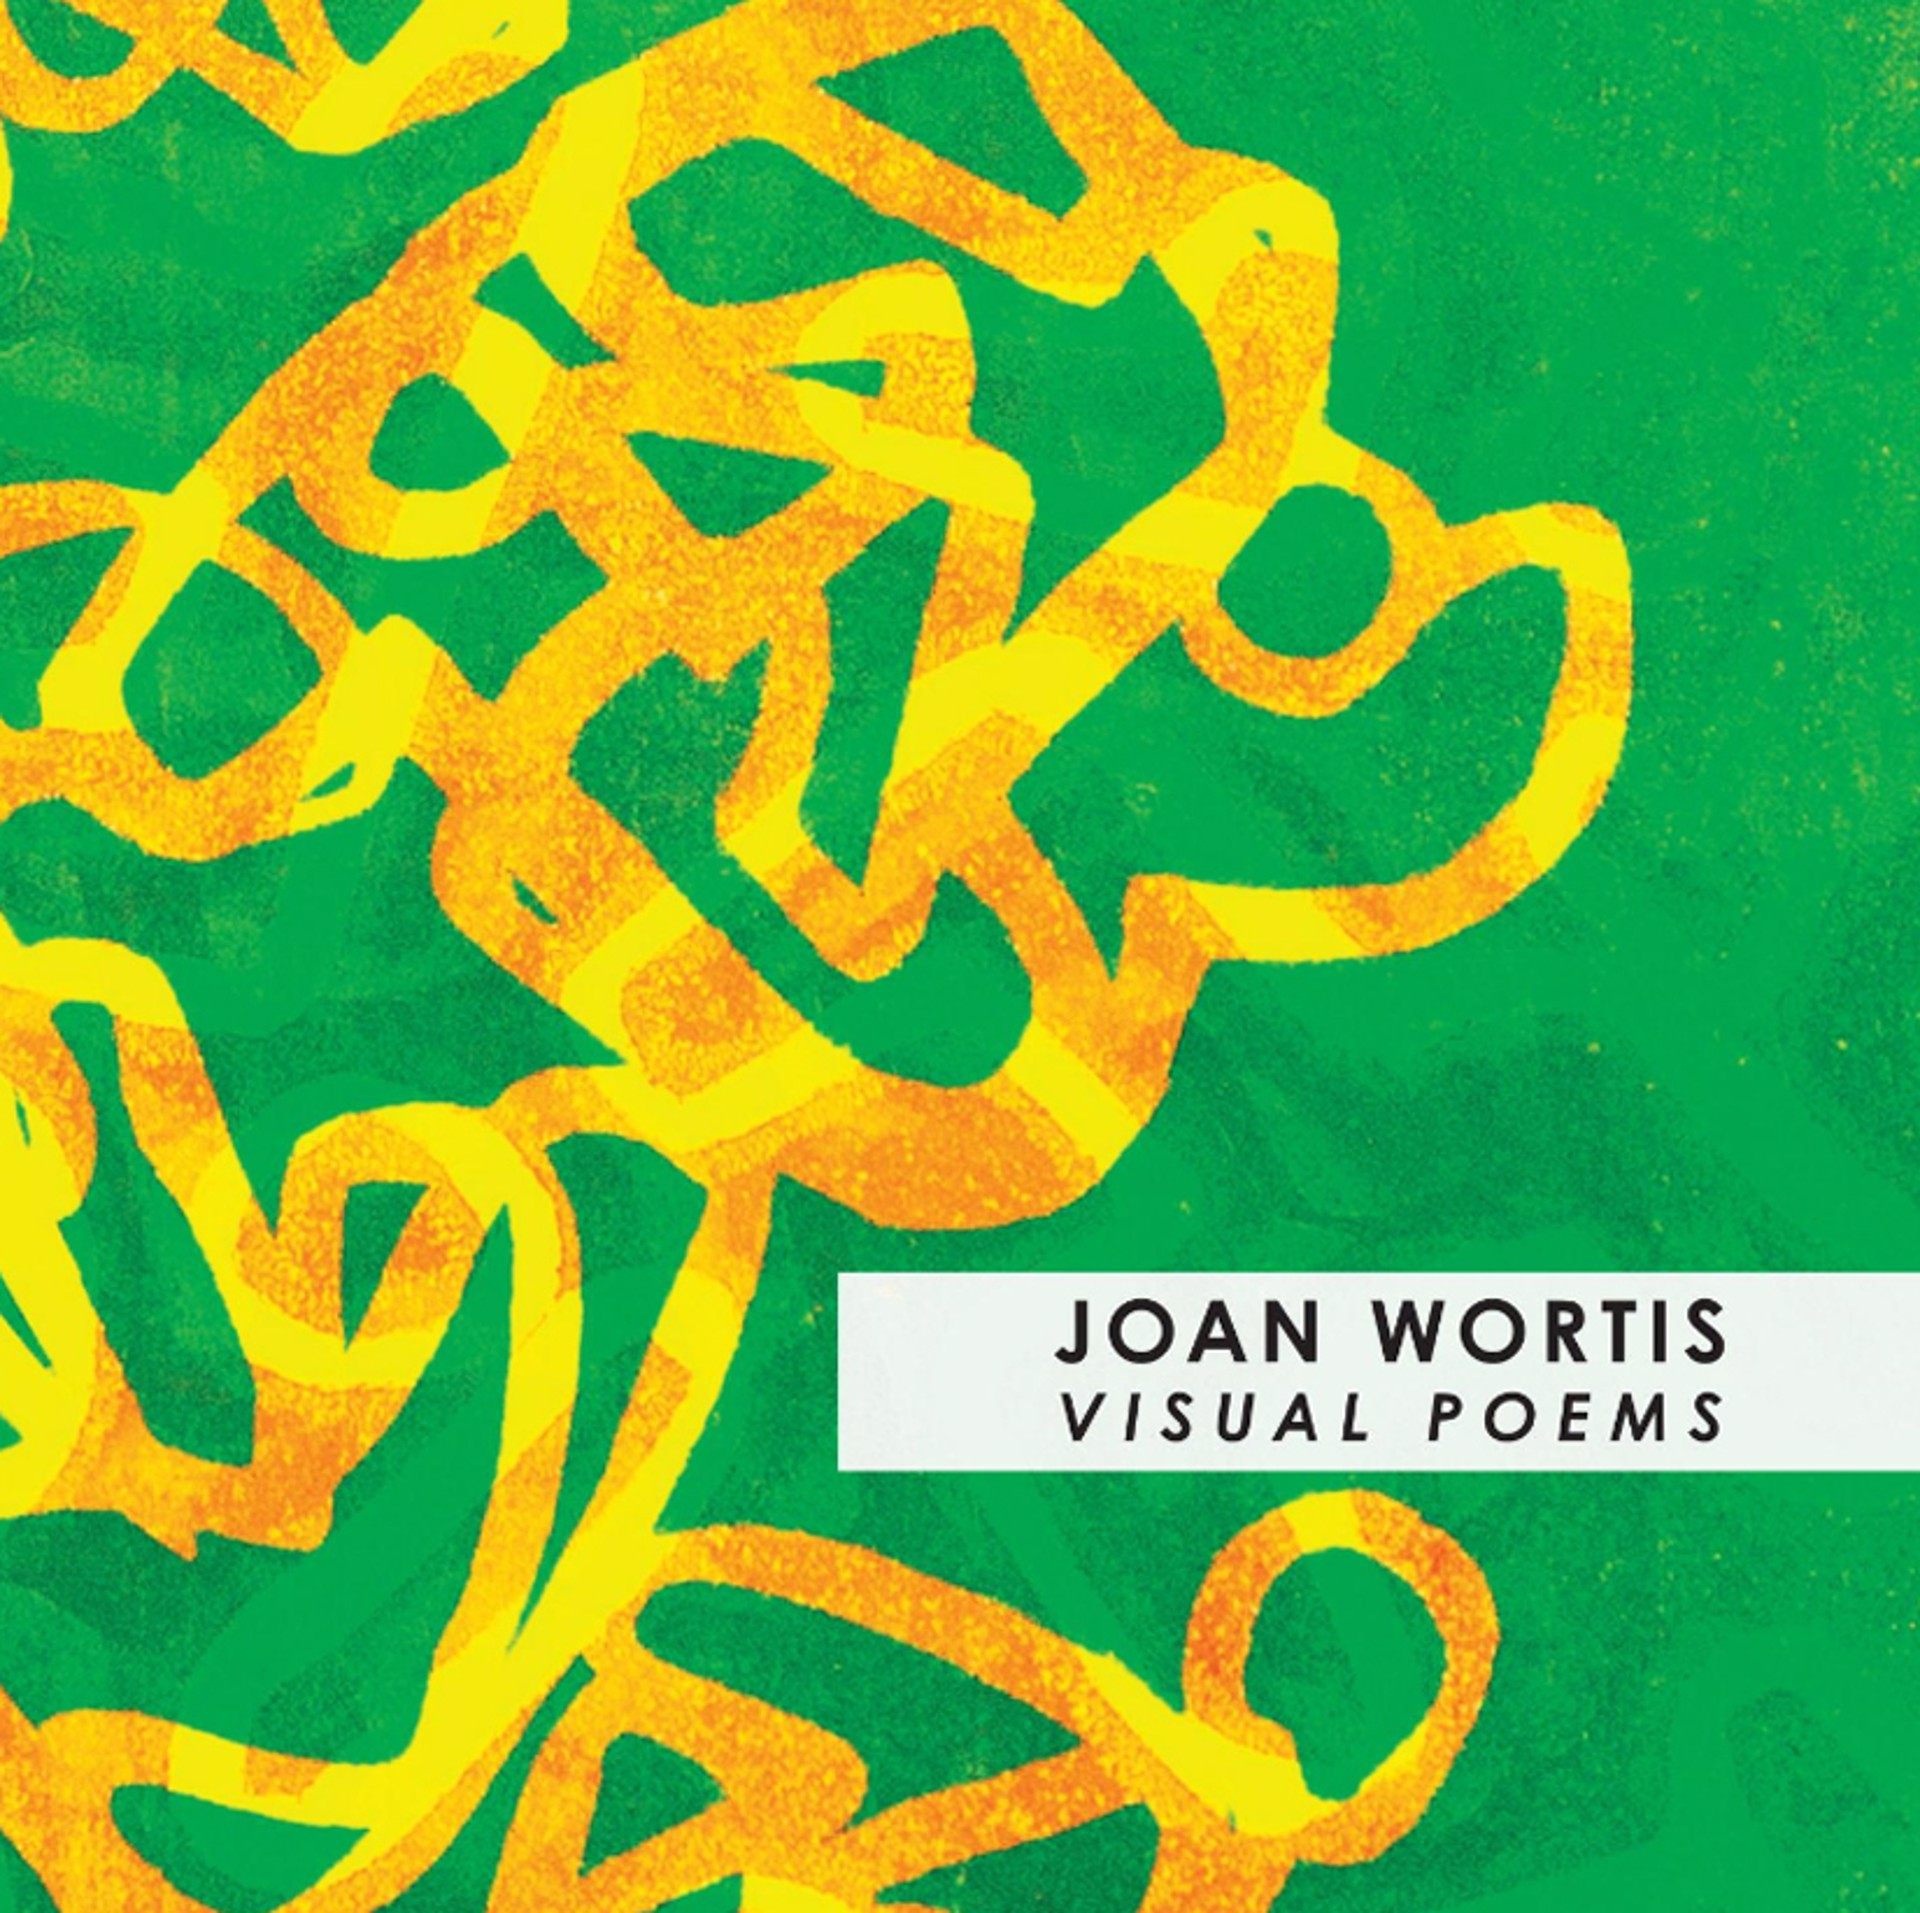 Visual Poems | exhibition catalog by Joan Wortis